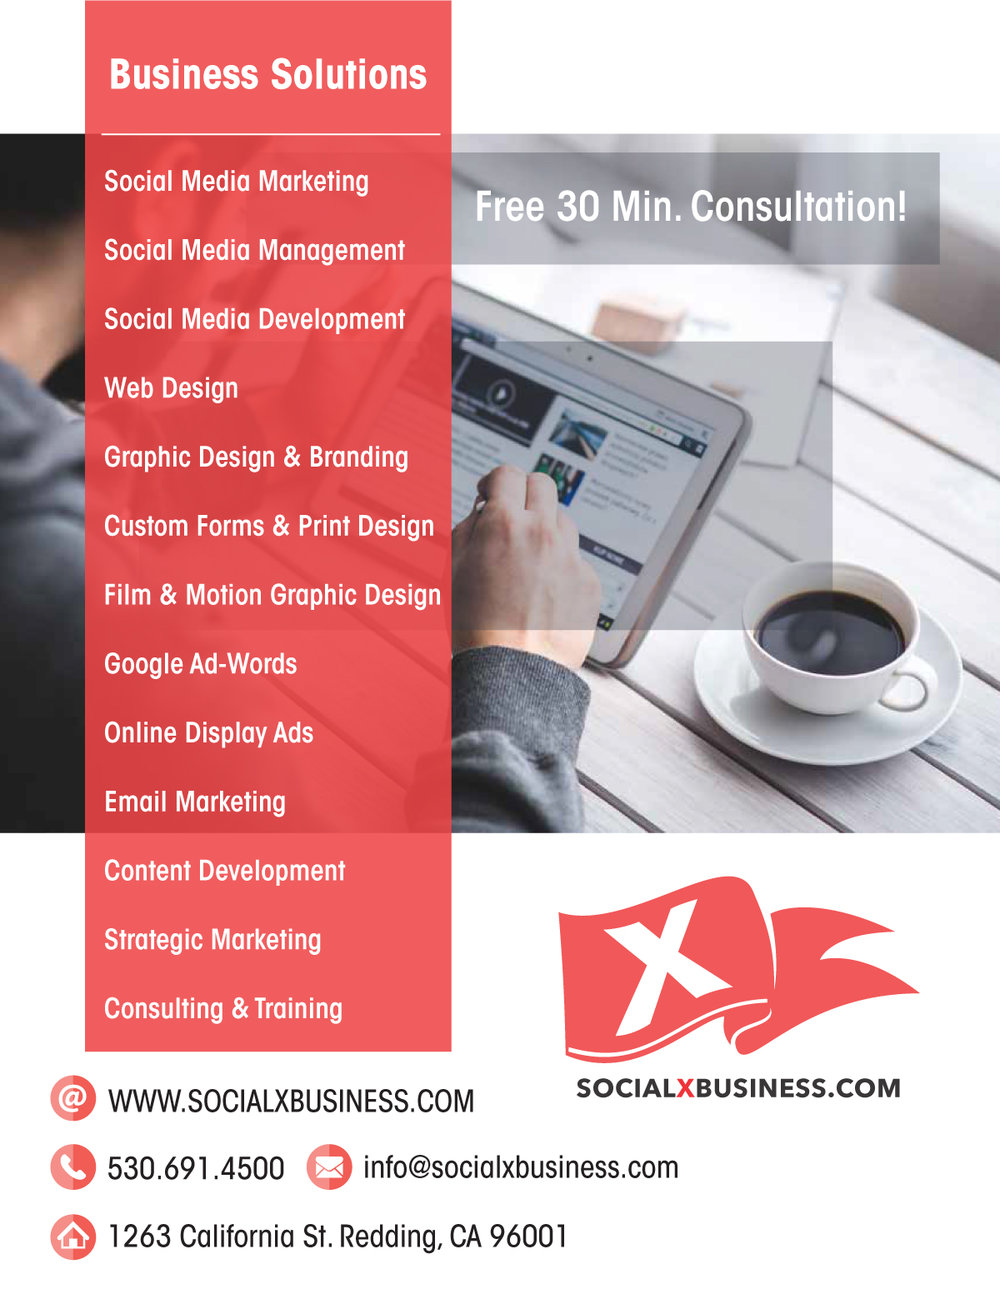 SocialxBusiness Digital Social Media Marketing Services.jpg